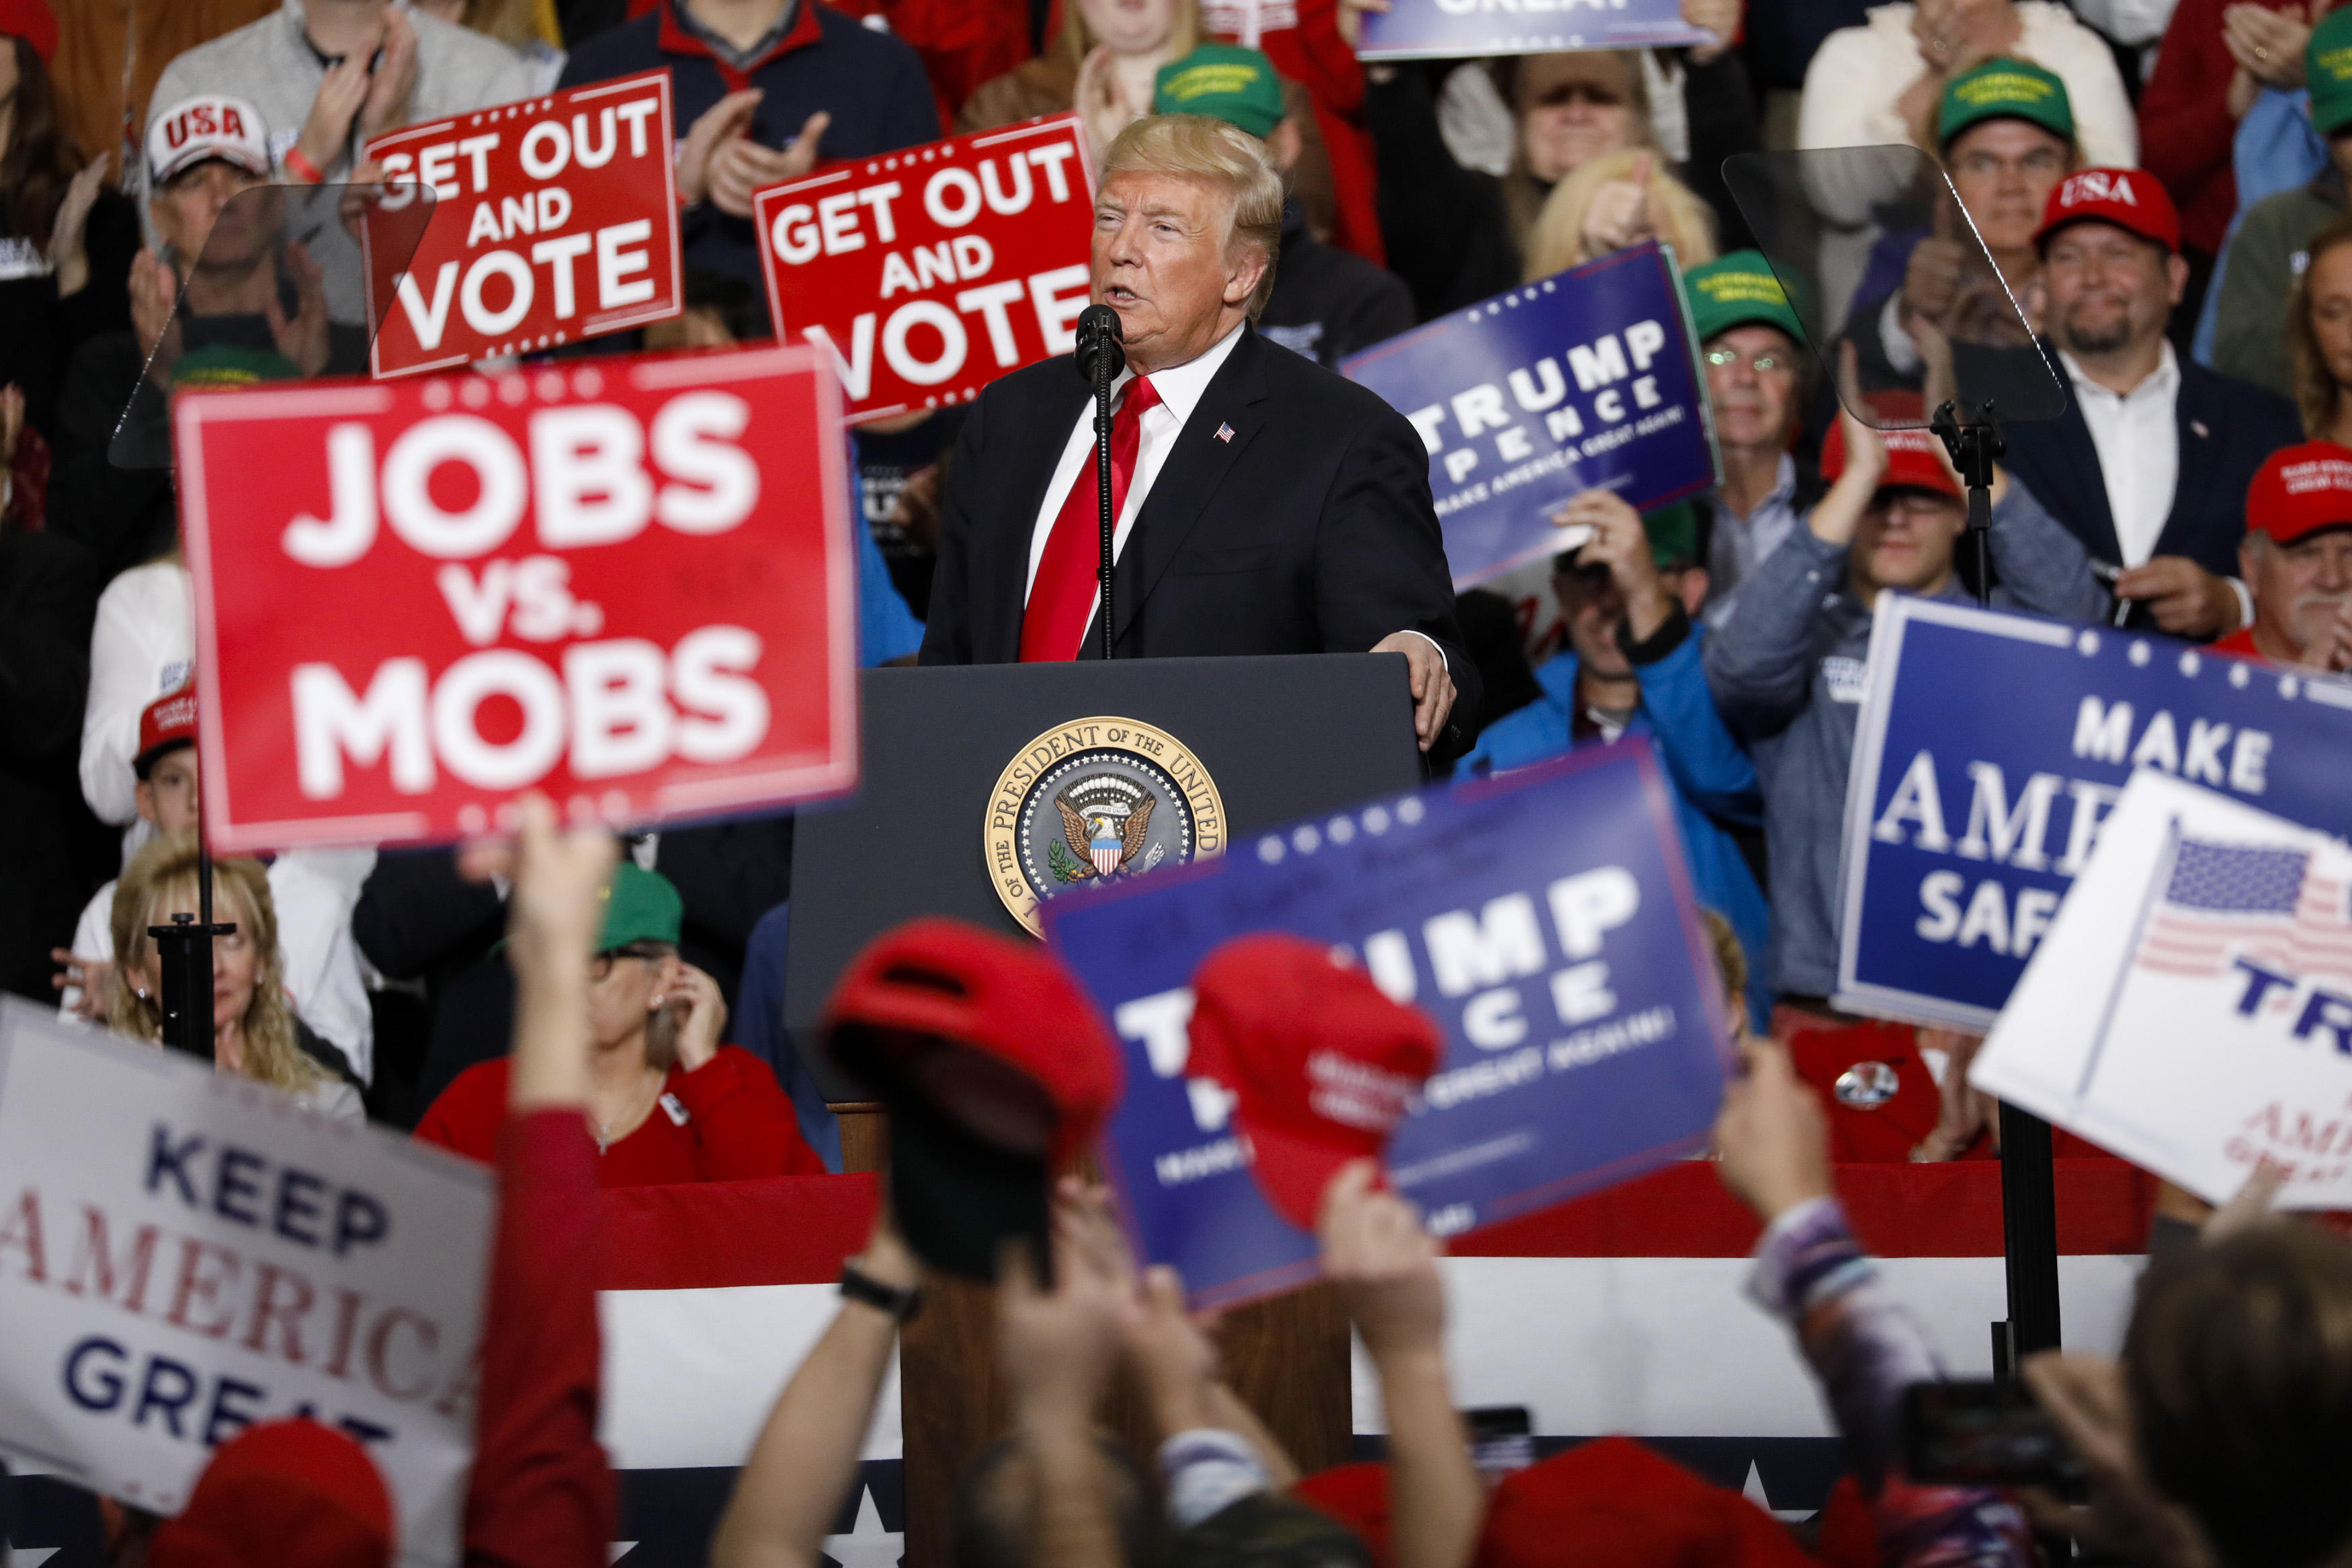 Trump Riding High At His First Rally Since End of Mueller Probe